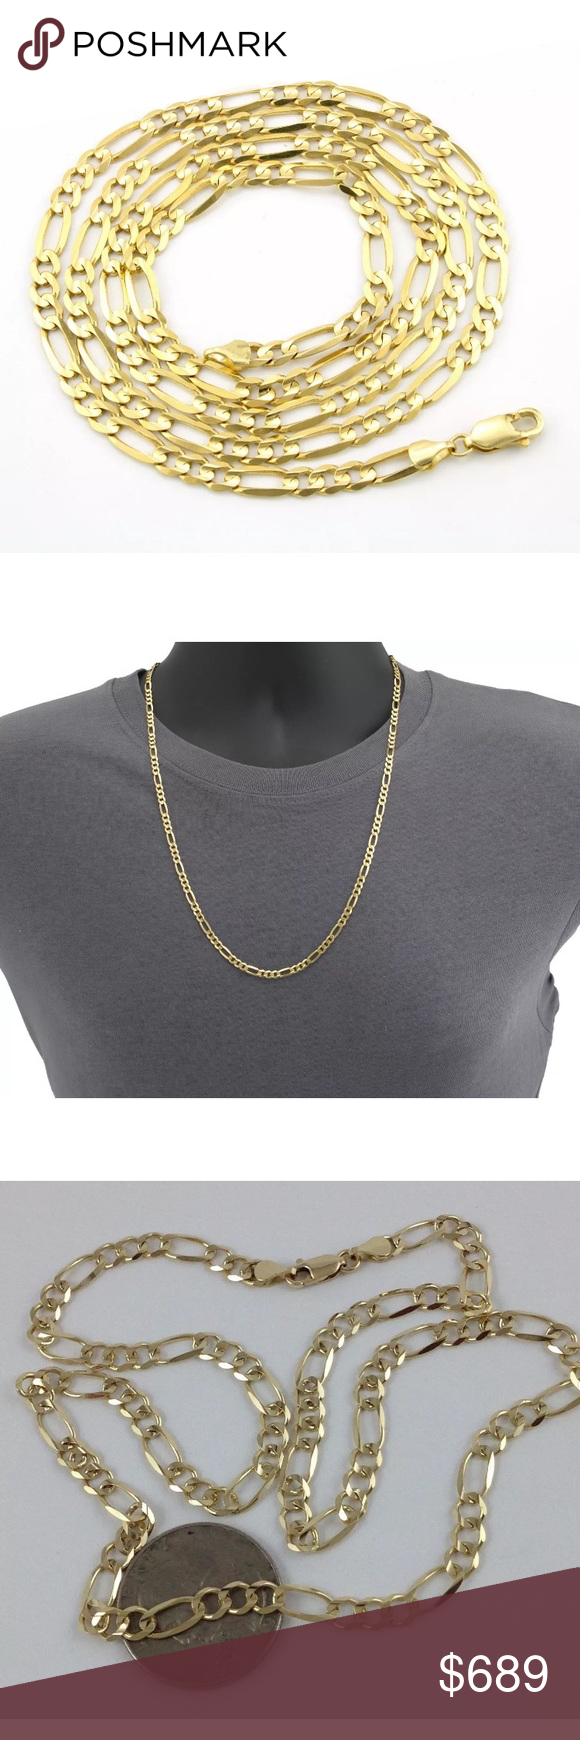 Real Gold 5mm 20 Figaro Chain Mens Necklace New Men S Necklace Solid Gold Jewelry Figaro Chains